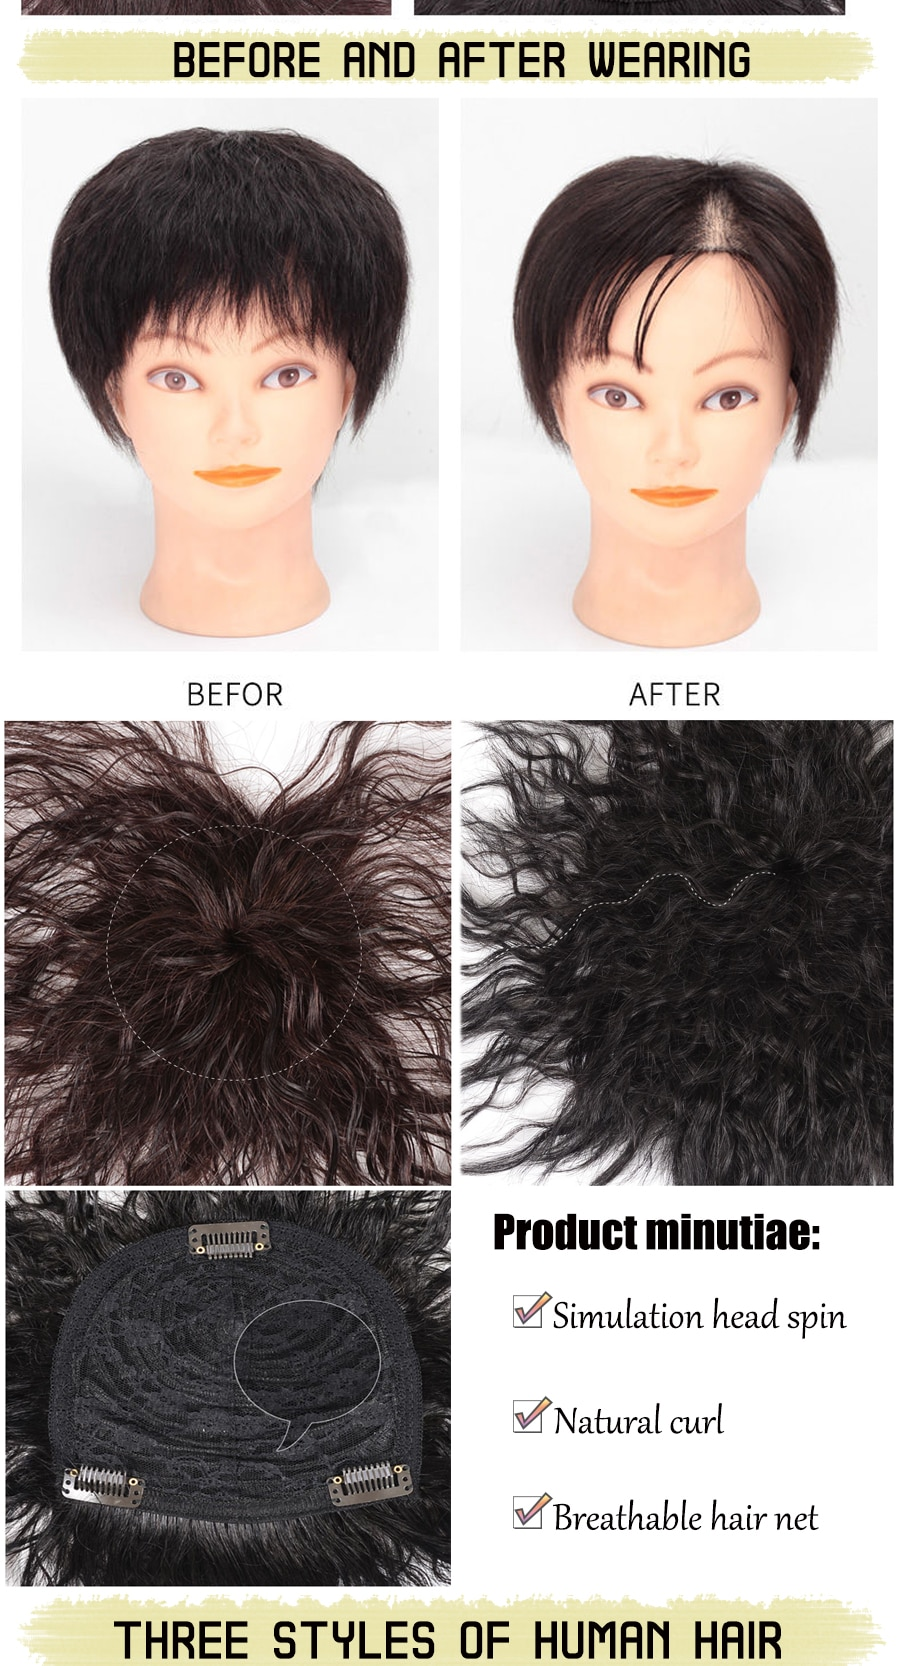 AILIADE Real Topper human hair Closure Clip Natural Black Brown for Women Hair Extensions hair pieces True invisibility wig